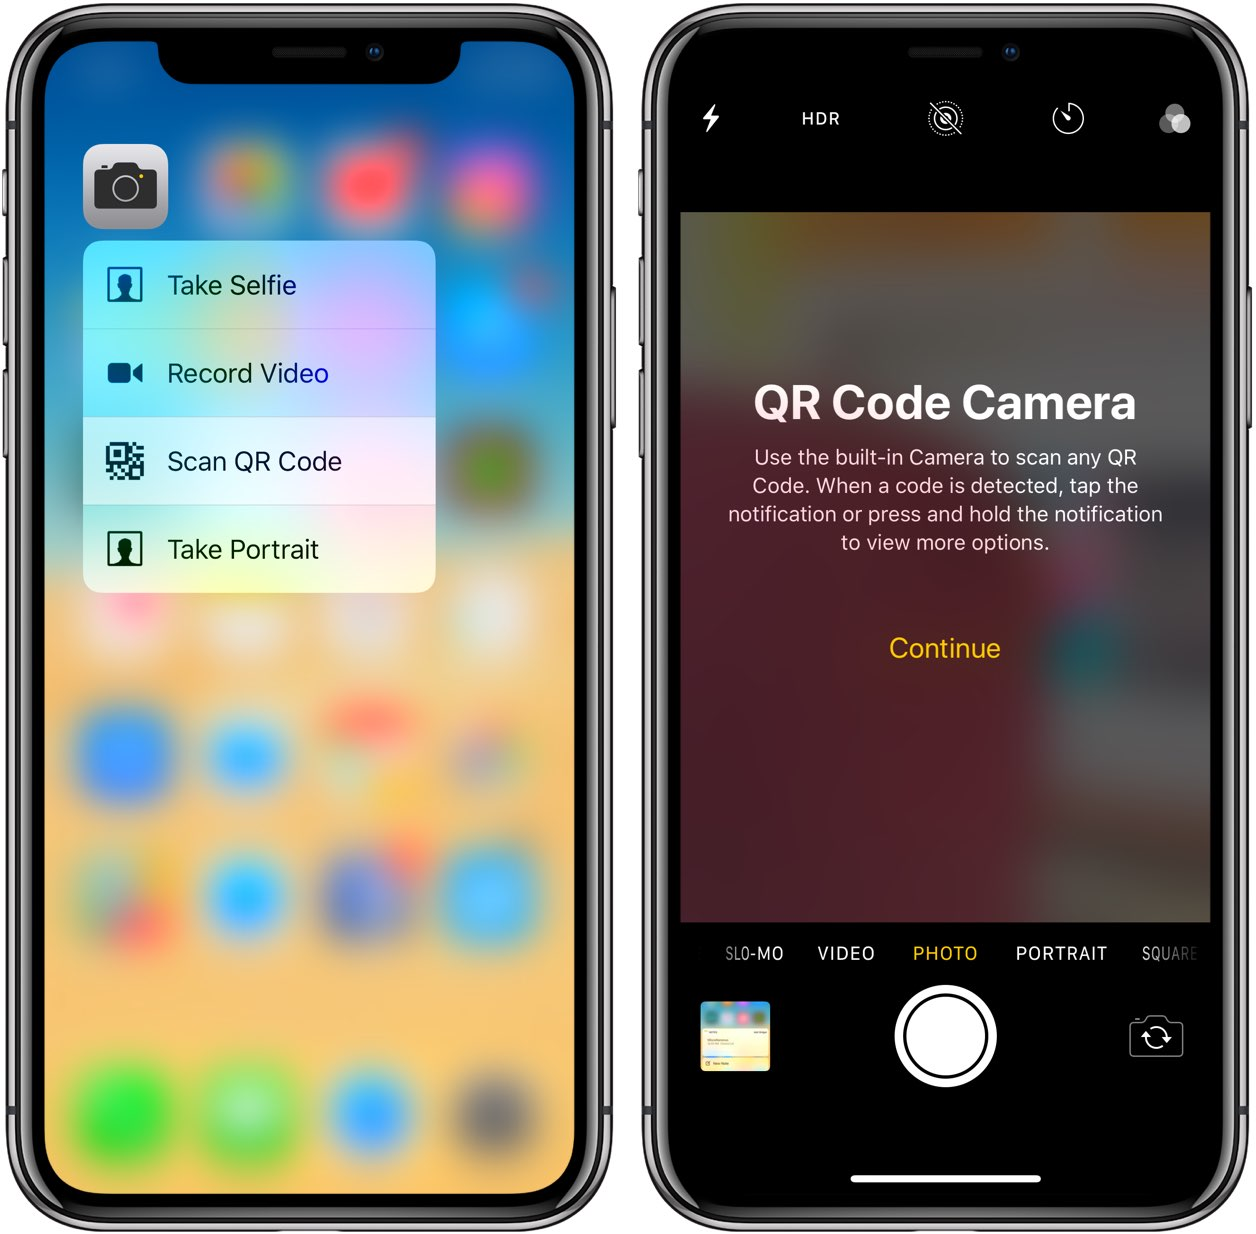 iOS 12 3D Touch shortcuts on the Home screen for the Camera app